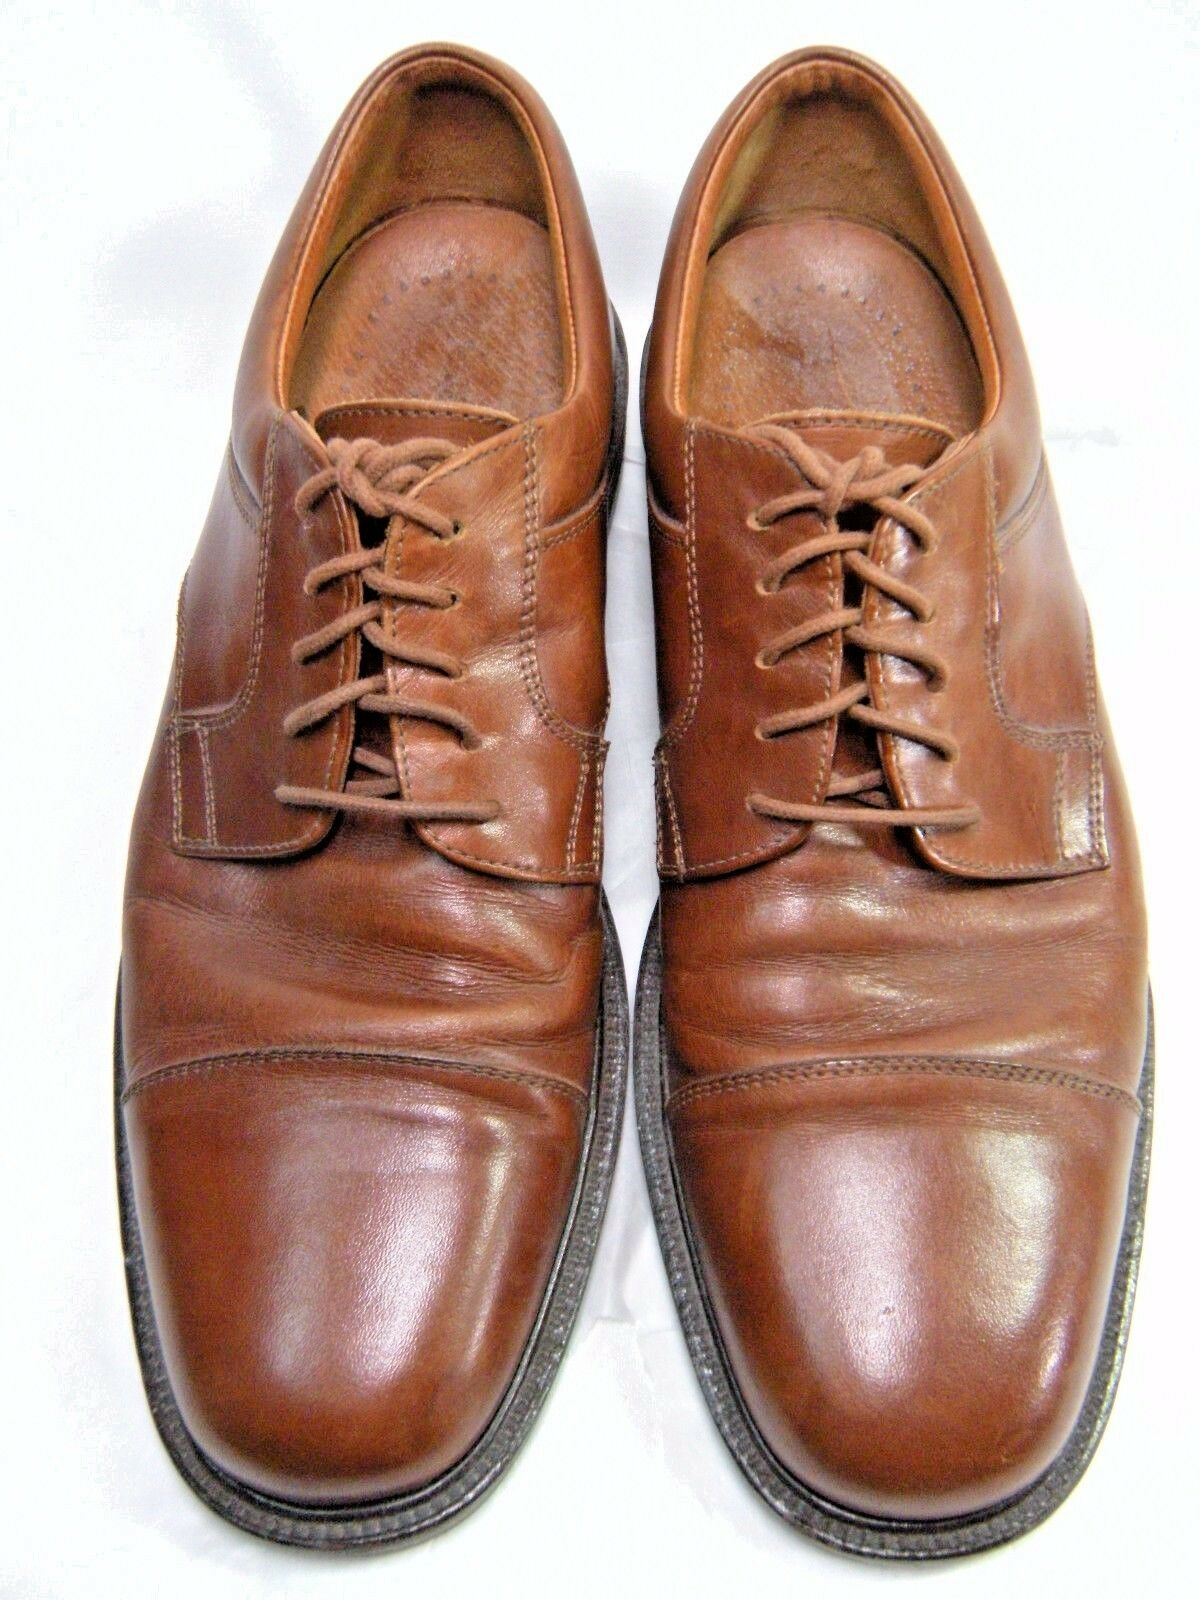 JOHNSTON & MURPHY PASSPORT Mens Oxfords  ITALY Sz 10 M  Cap Toe Leather BJ